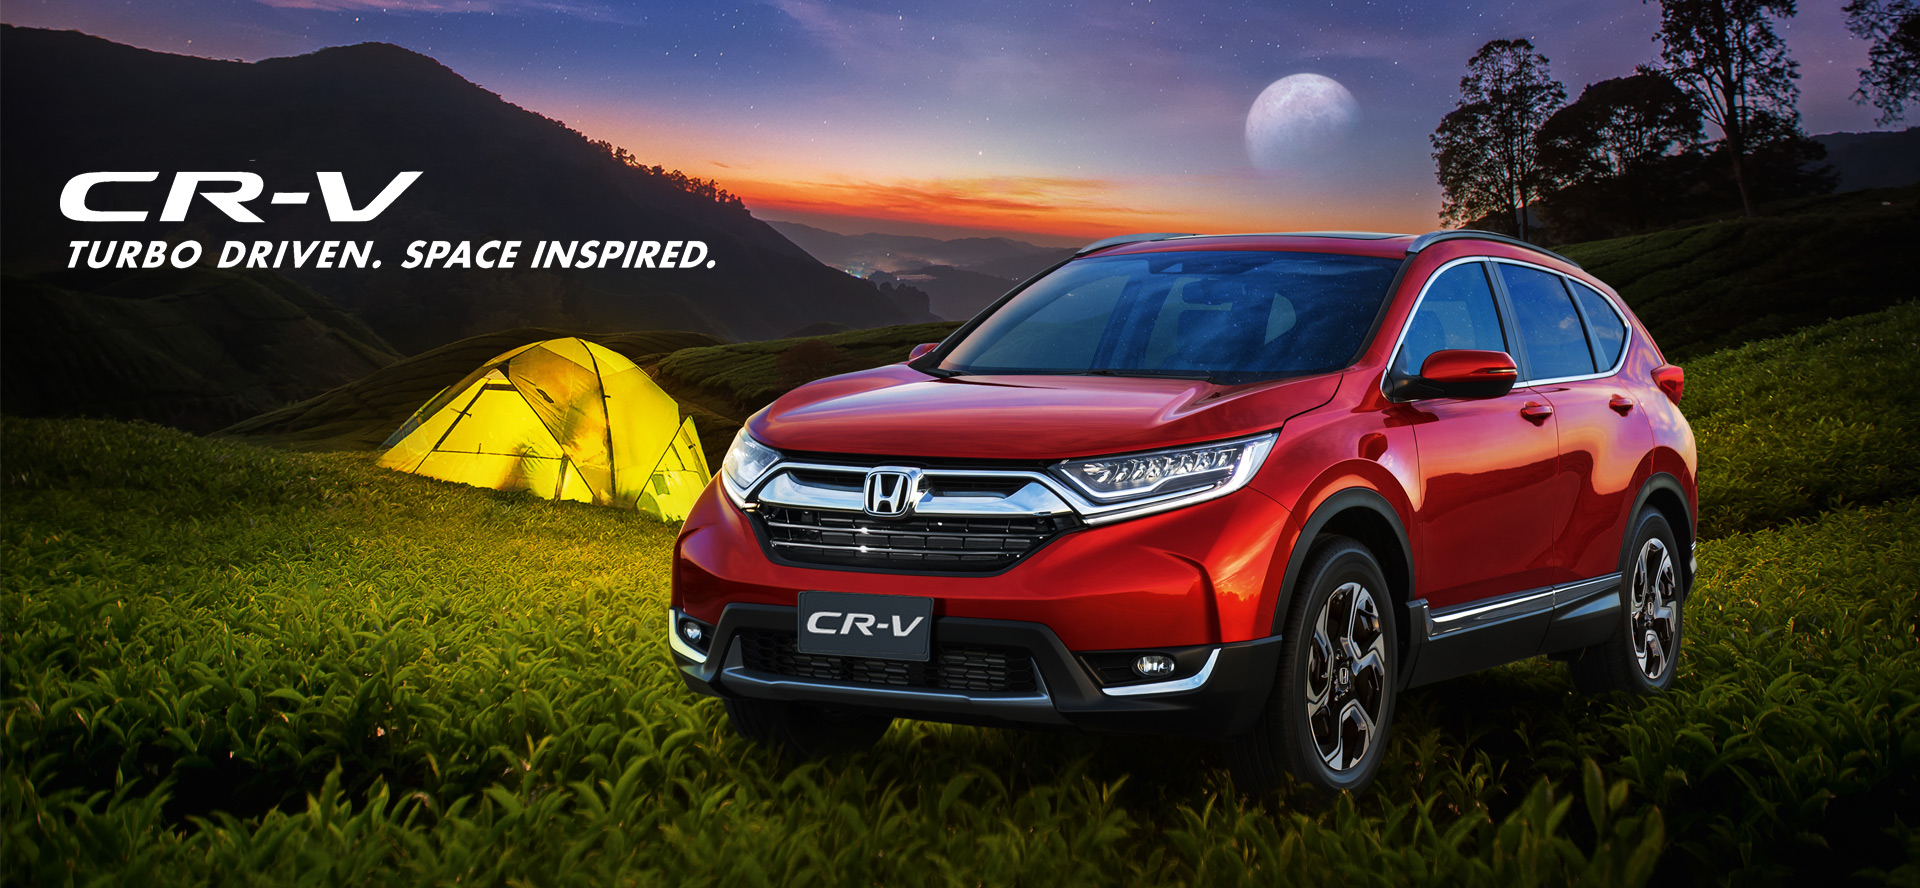 CR-V_Revised_1_R Honda CR-V